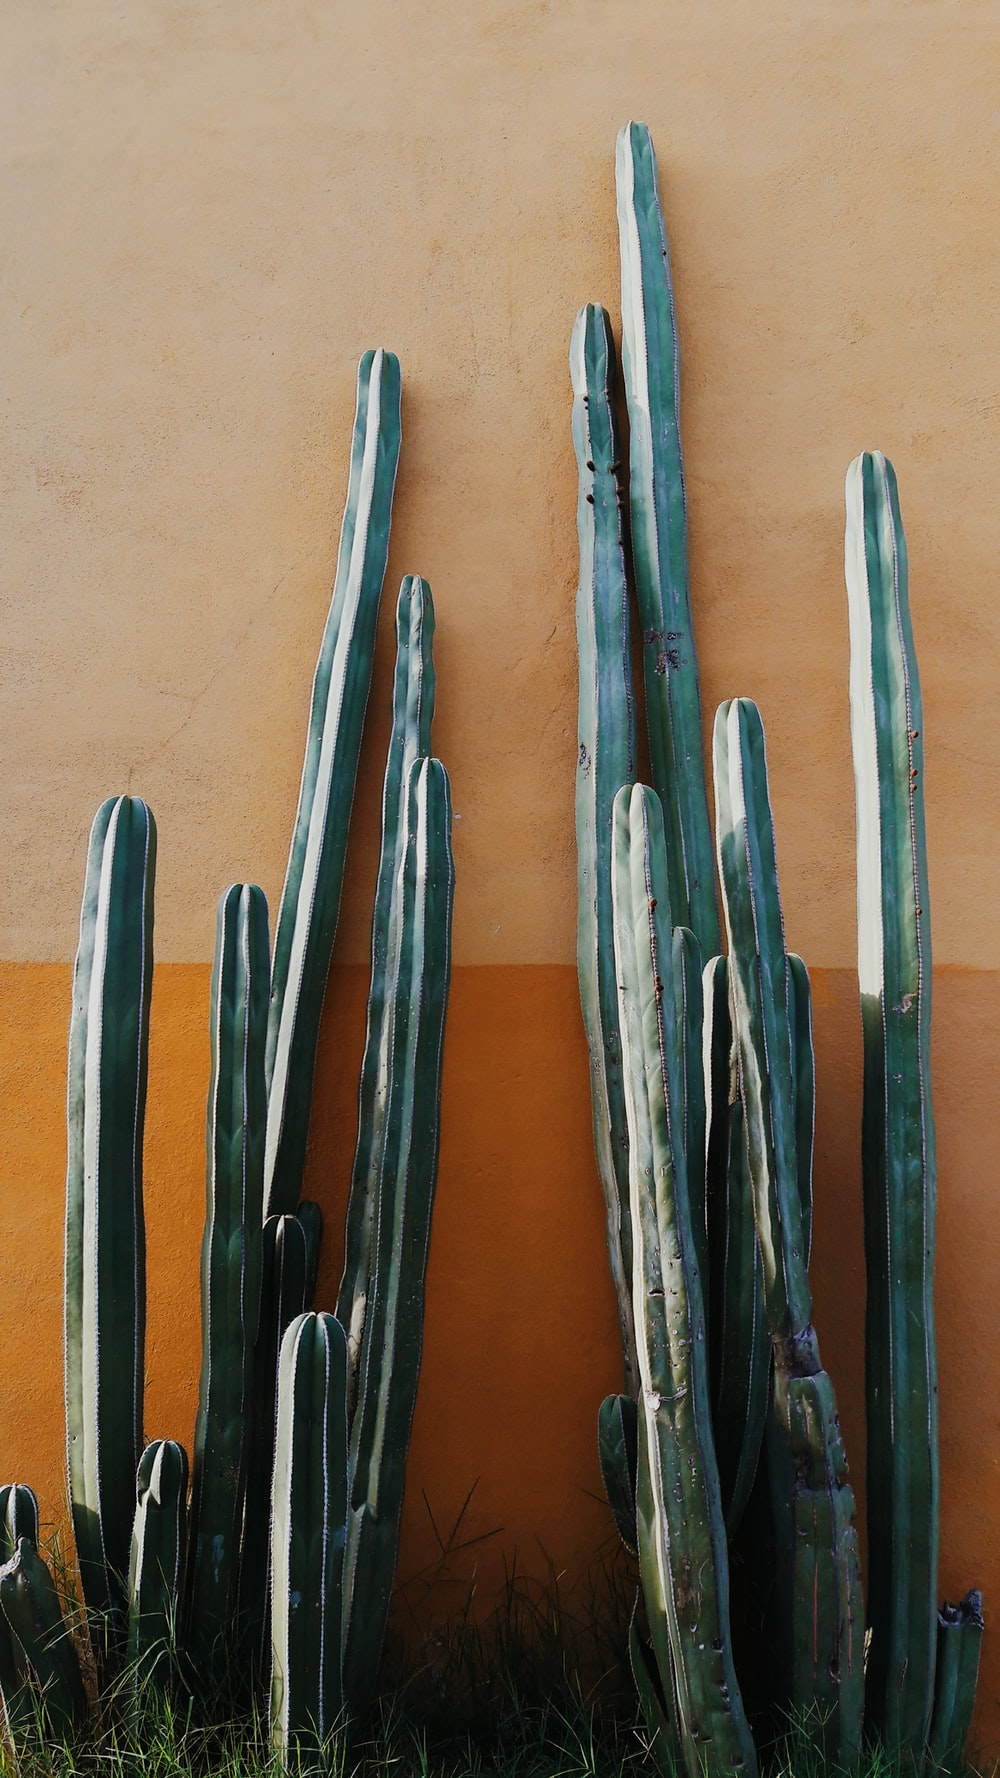 four blue and black wooden handled tools